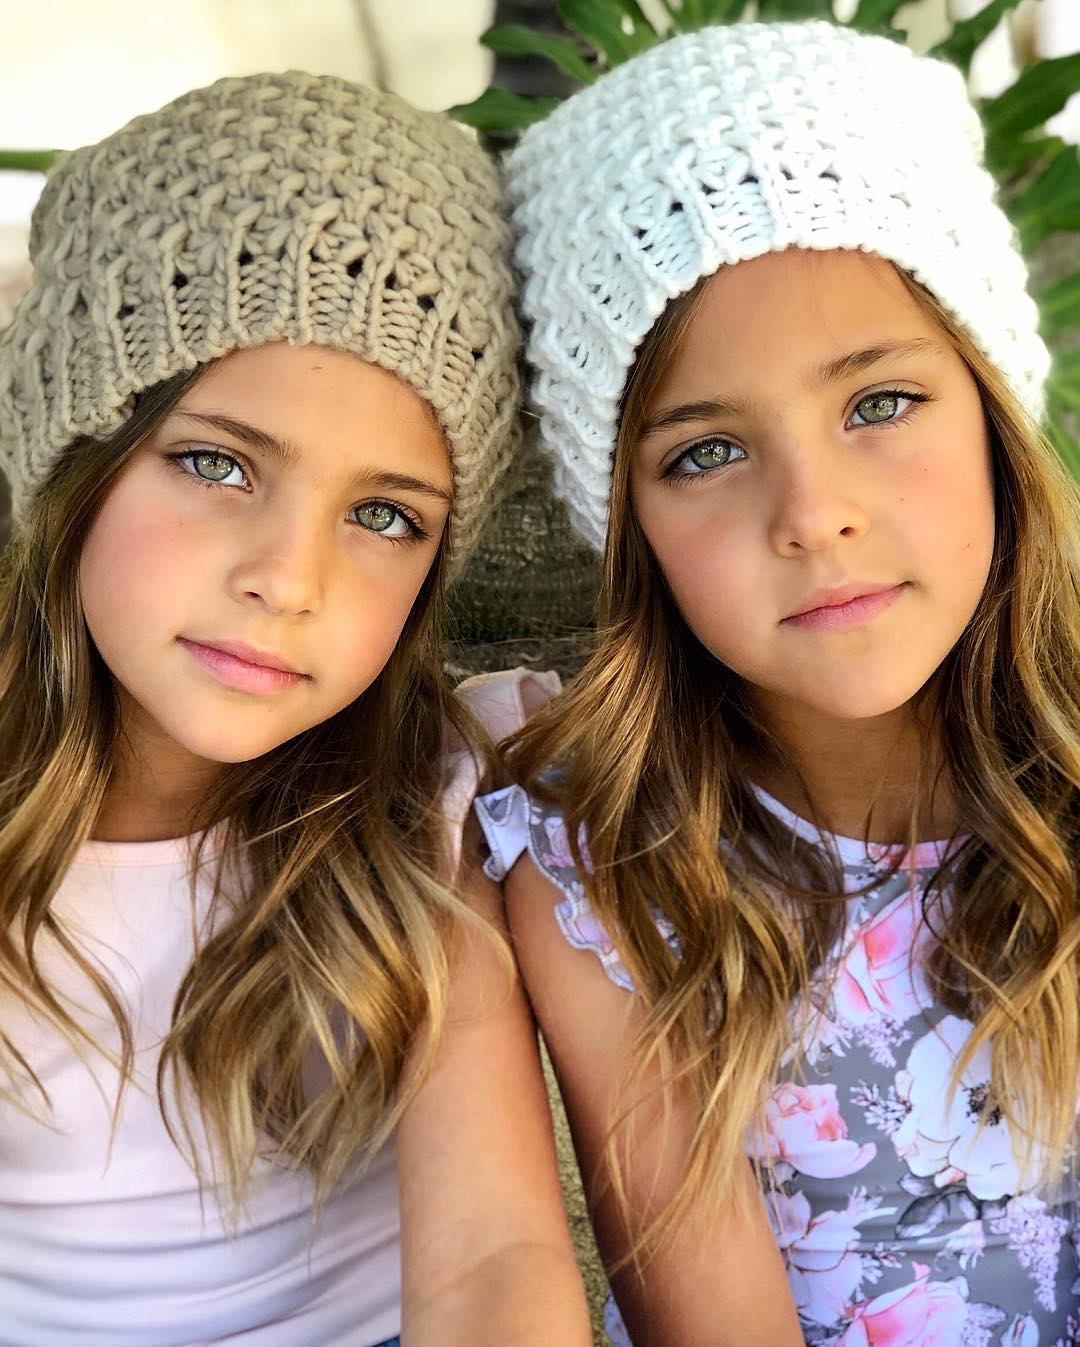 """<a href=""""https://style.nine.com.au/2017/04/06/15/43/style_teenager-loreal-contract"""" target=""""_blank"""" draggable=""""false"""">Former child model and <em>French Vogue </em>star, Thylane Blondeau,</a> may have some competition when it comes to being 'The most beautiful girl in the world'.<br /> <br /> Seven-year-old twins, <a href=""""https://www.instagram.com/clementstwins/?hl=en"""" target=""""_blank"""" draggable=""""false"""">Leah Rose and Ava Marie Clements,</a> have quickly become Instagram's latest genetically-blessed obsession.<br /> <br /> Owing to their glowing complexions, chestnut hair and high cheekbones, the duo has amassed over 546,00 followers since their mother started an account for them in July last year.<br /> <br /> """"Wow they're too gorgeous,"""" commented one user.<br /> <br /> """"Gorgeous little girls ♡ their eyes are so beautiful ♡ They are going to be heart breakers when they get older!"""" wrote another.<br /> <br /> """"I don't think I've ever seen two more STUNNING little girls! WOW! Of course, Mum & Dad and Big Brother aren't chopped liver either! Beautiful family! """" enthused an Instagram user.<br /> <br /> And it's not just the Internet that has been beguiled by the twins' beauty.<br /> <br /> """"For as long as I can remember strangers would approach me when we were out asking first if they were twins (No... they just look exactly alike ;), Their follow up would always be... """"Wow they are so beautiful, you should really think about getting them into modelling."""" Leah and Ava's mother, Jaci Clements, penned on the <em><a href=""""http://www.theclementstwins.com/blog/archives/10-2017"""" target=""""_blank"""" draggable=""""false"""">theclementstwins.com</a></em><br /> <br /> """"And I did think about it, I even gave it a good 3-month effort. When they were 6 months old (pic below) I signed then up with a them an agency in LA,""""<br /> <br /> """"But with a two-year-old son and a new set of twins, it was hard enough to get out of the door most days so my attempt back then was short lived and I decided it j"""